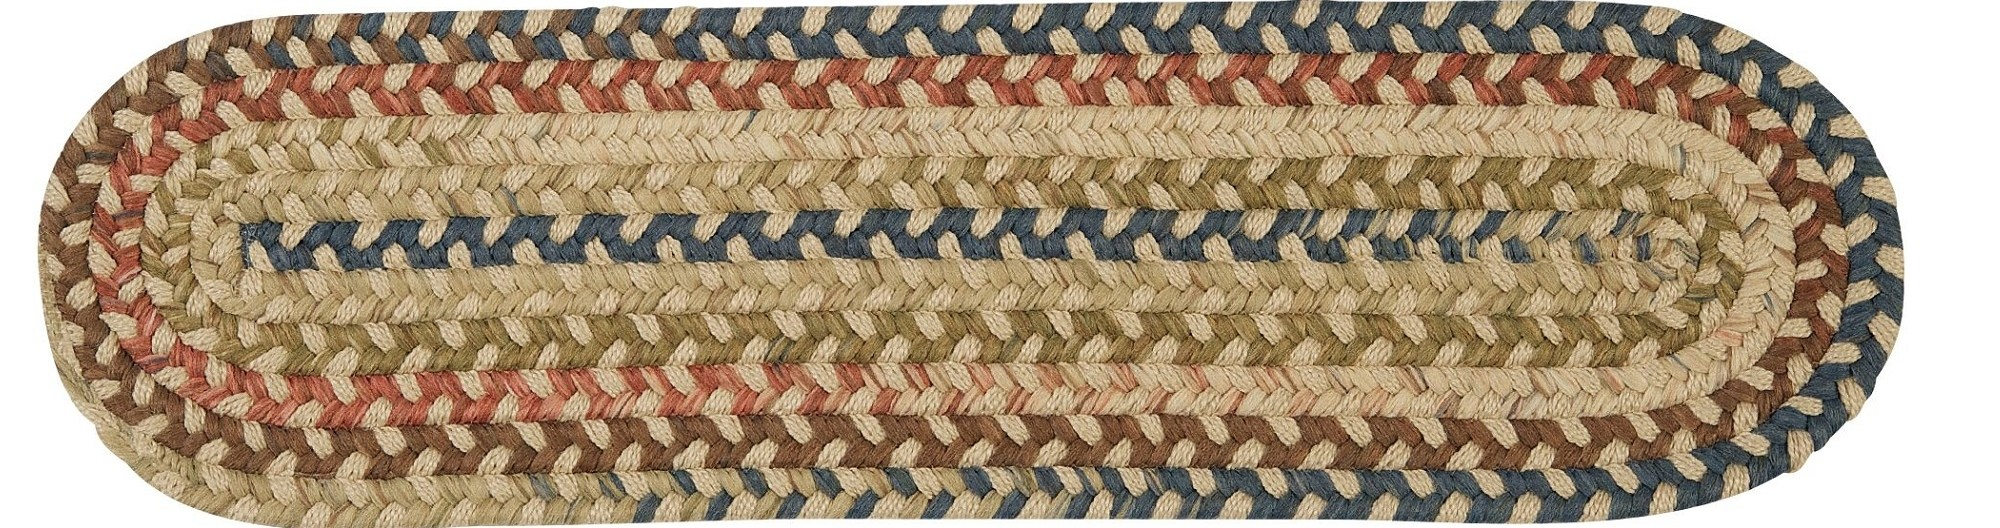 28 Beige Green And Blue Handmade Braided Stair Tread Rug   Braided Stair Tread Rugs   Olive Burgundy   Tree Hill   Rhody Rug   Shape Oval   Indoor Outdoor